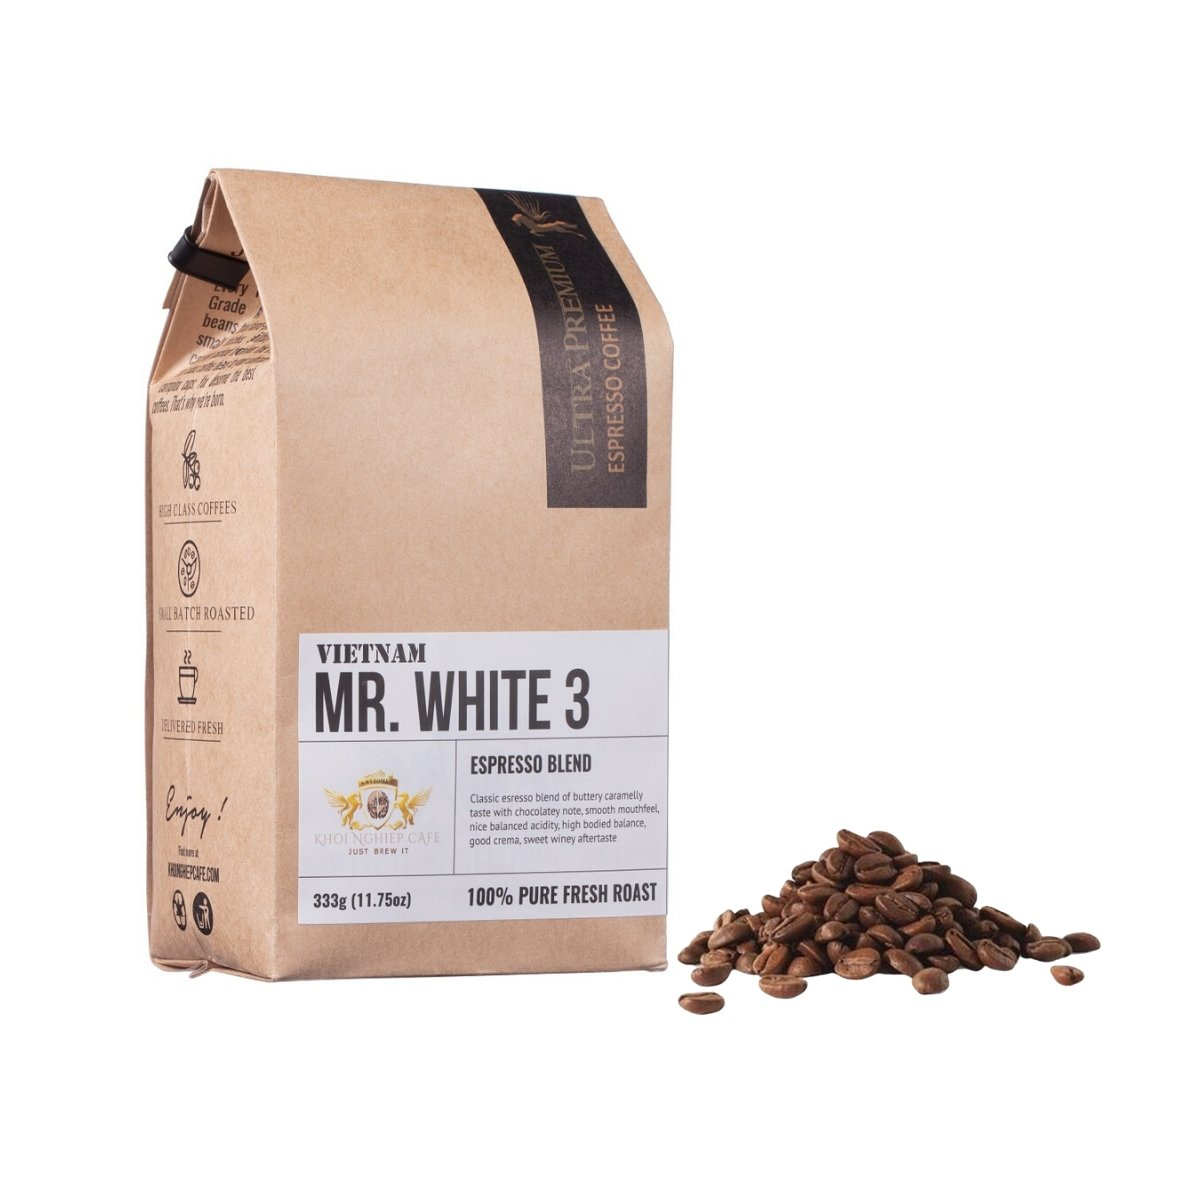 khoi nghiep cafe mr white 3 cafe hat ngon chuan y pha may espresso vietnam hcm